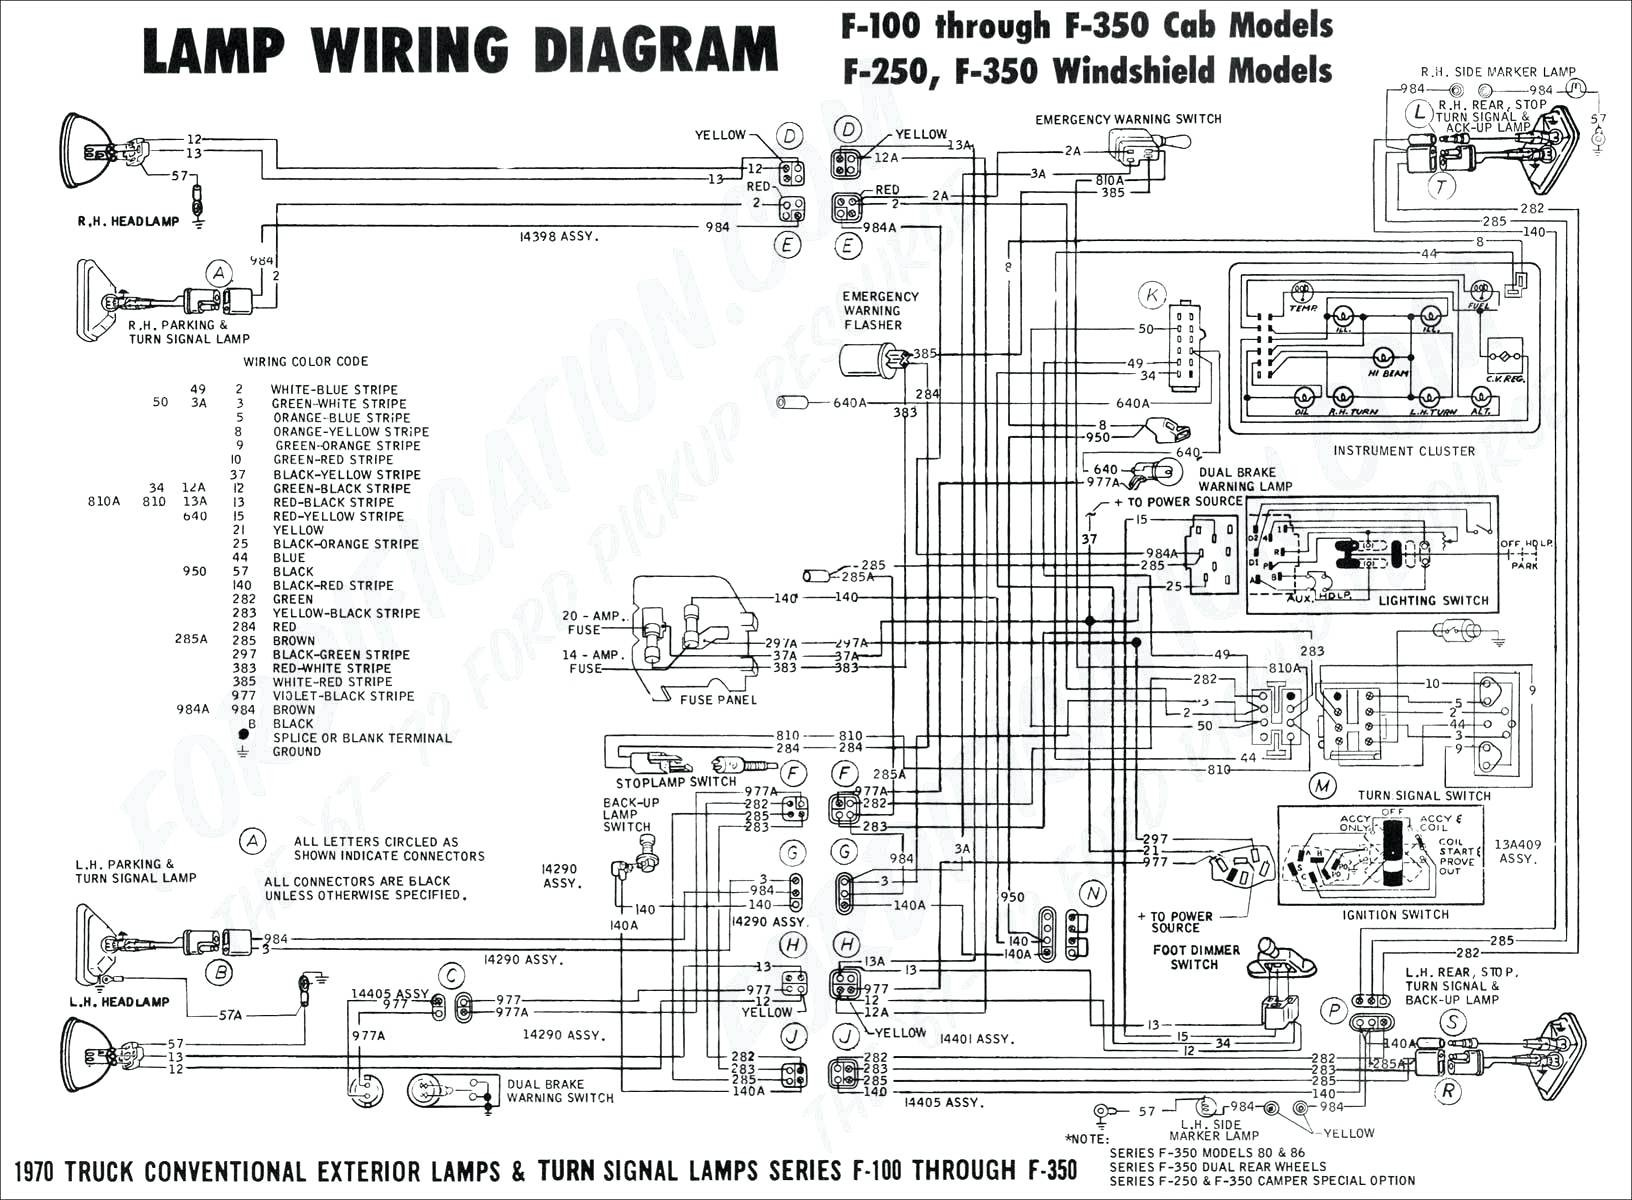 Mercedes Benz Wiring Diagram Besides 2006 ford F 250 Mirror Wiring Diagram Moreover Mercedes Benz Of Mercedes Benz Wiring Diagram